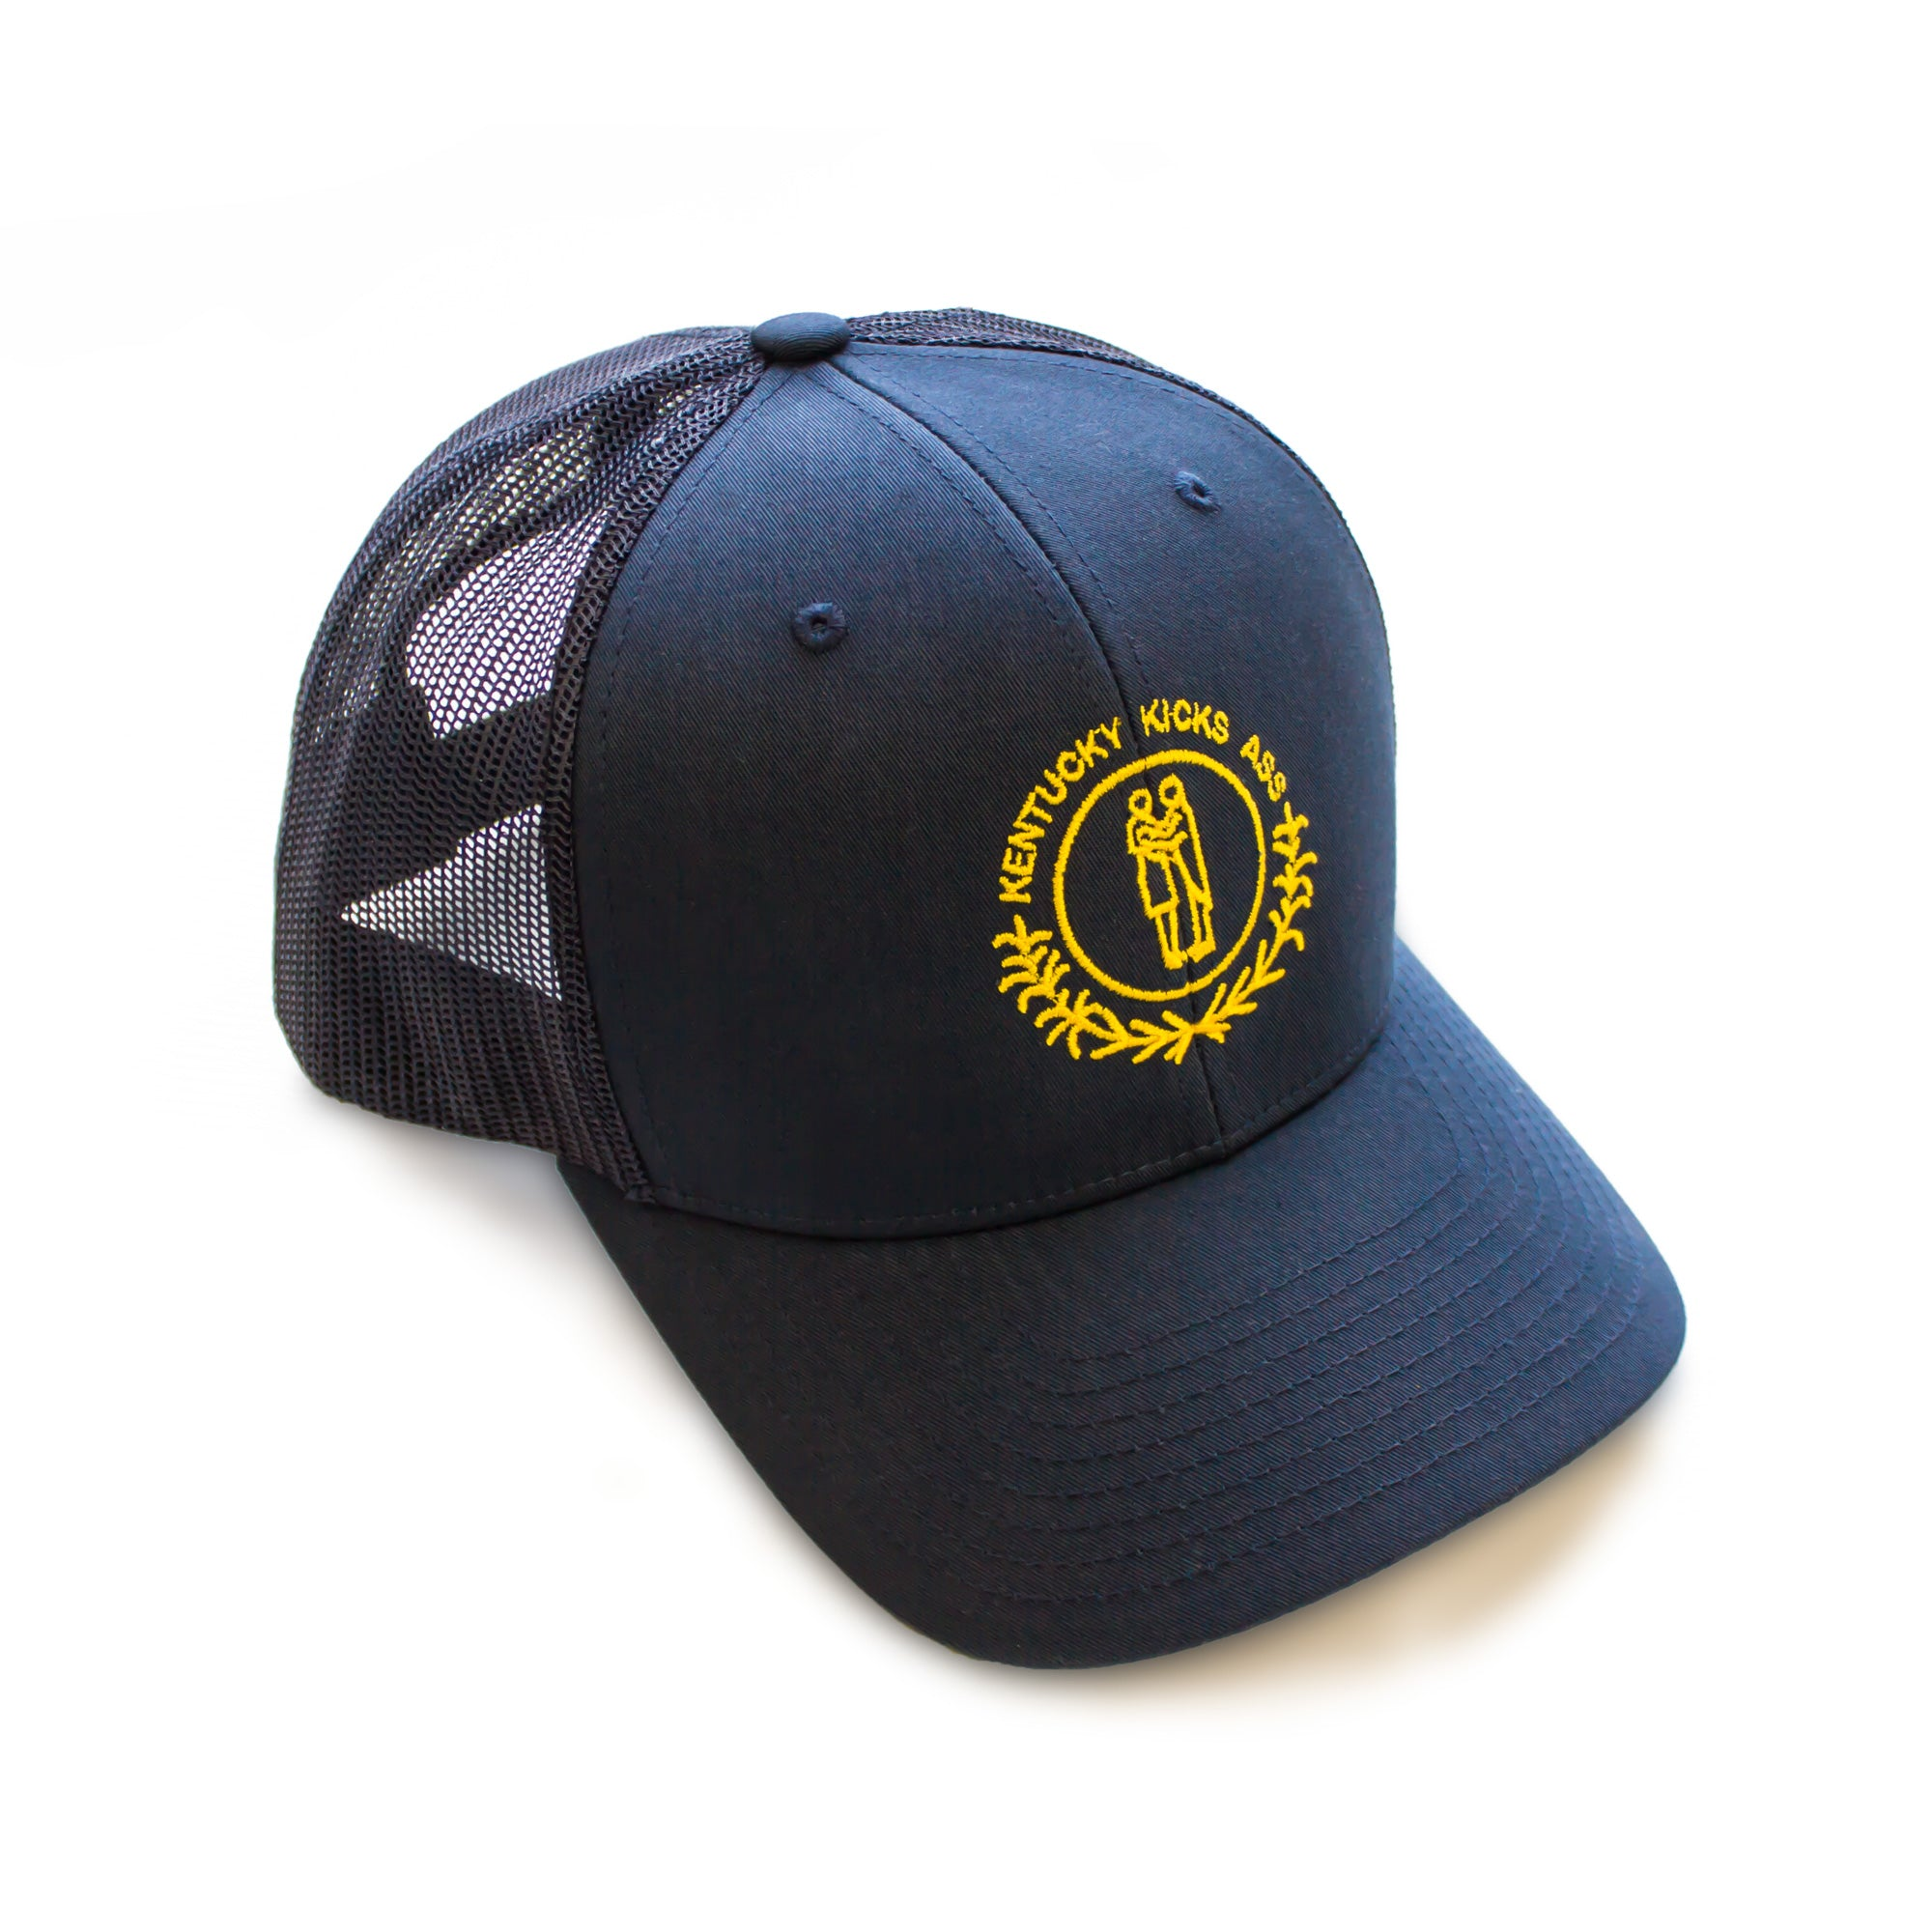 Commonwealth Seal Trucker Hat-Hat-KY for KY Store